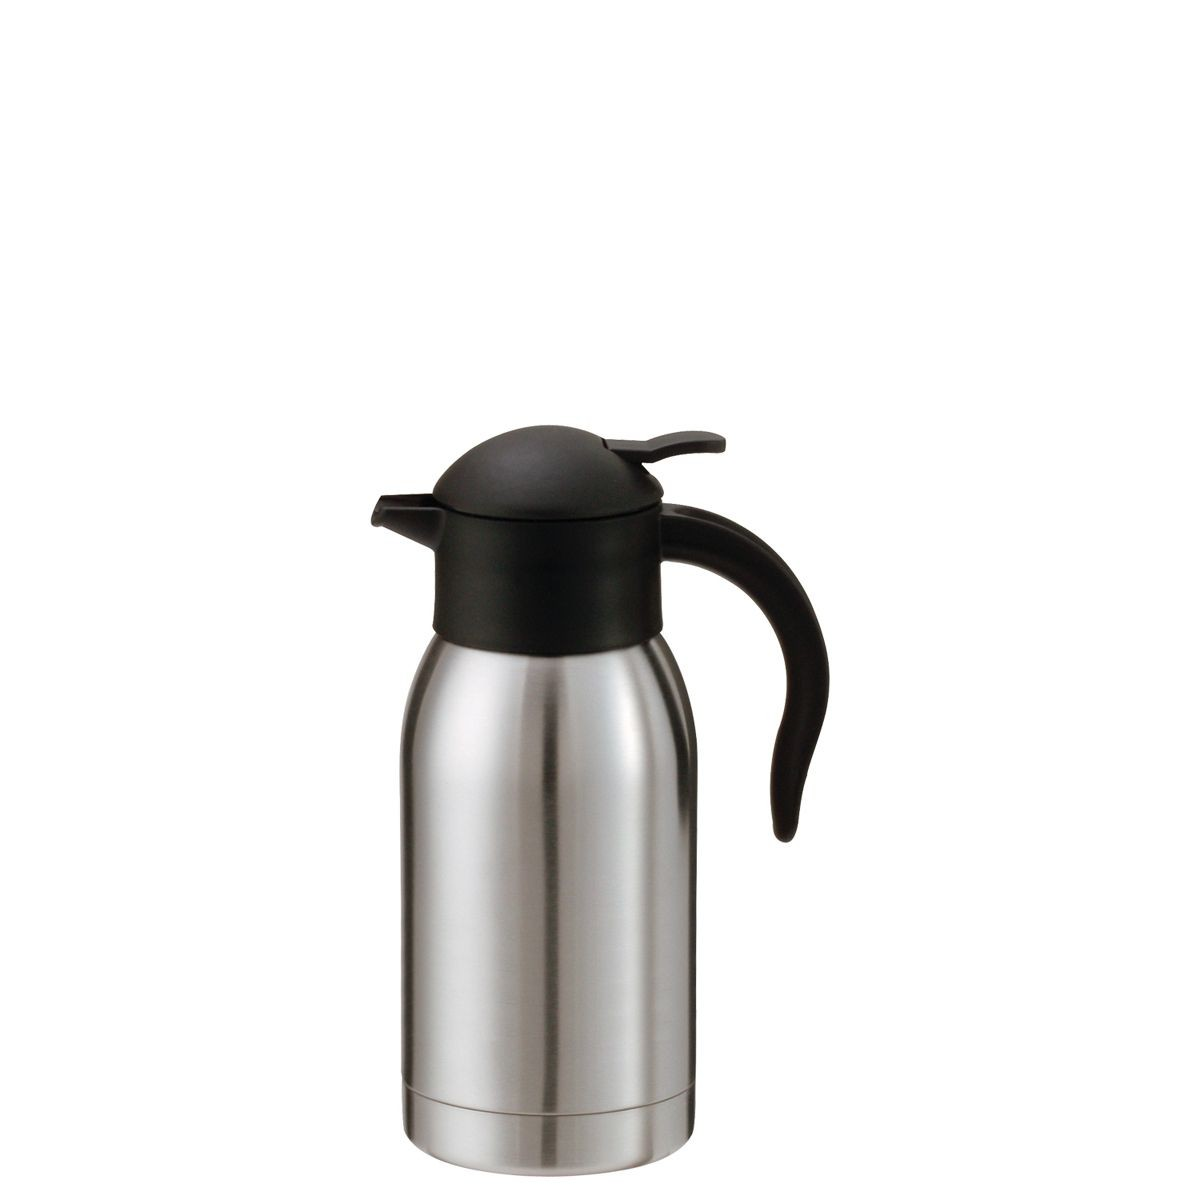 Service Ideas SJ10SS Steelvac Stainless Vacuum Carafe with Push Button Lid, 1 Liter